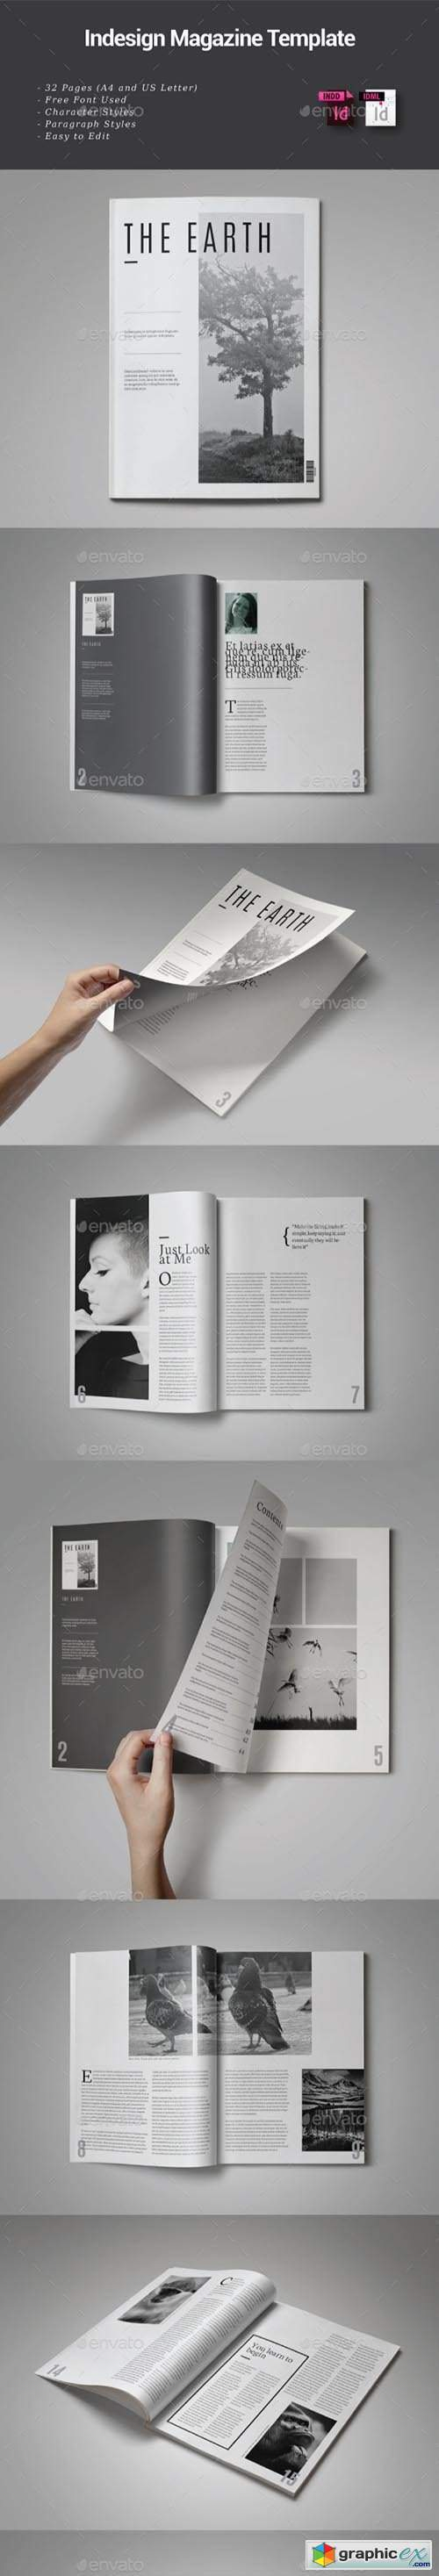 32 Pages Indesign Magazine Template